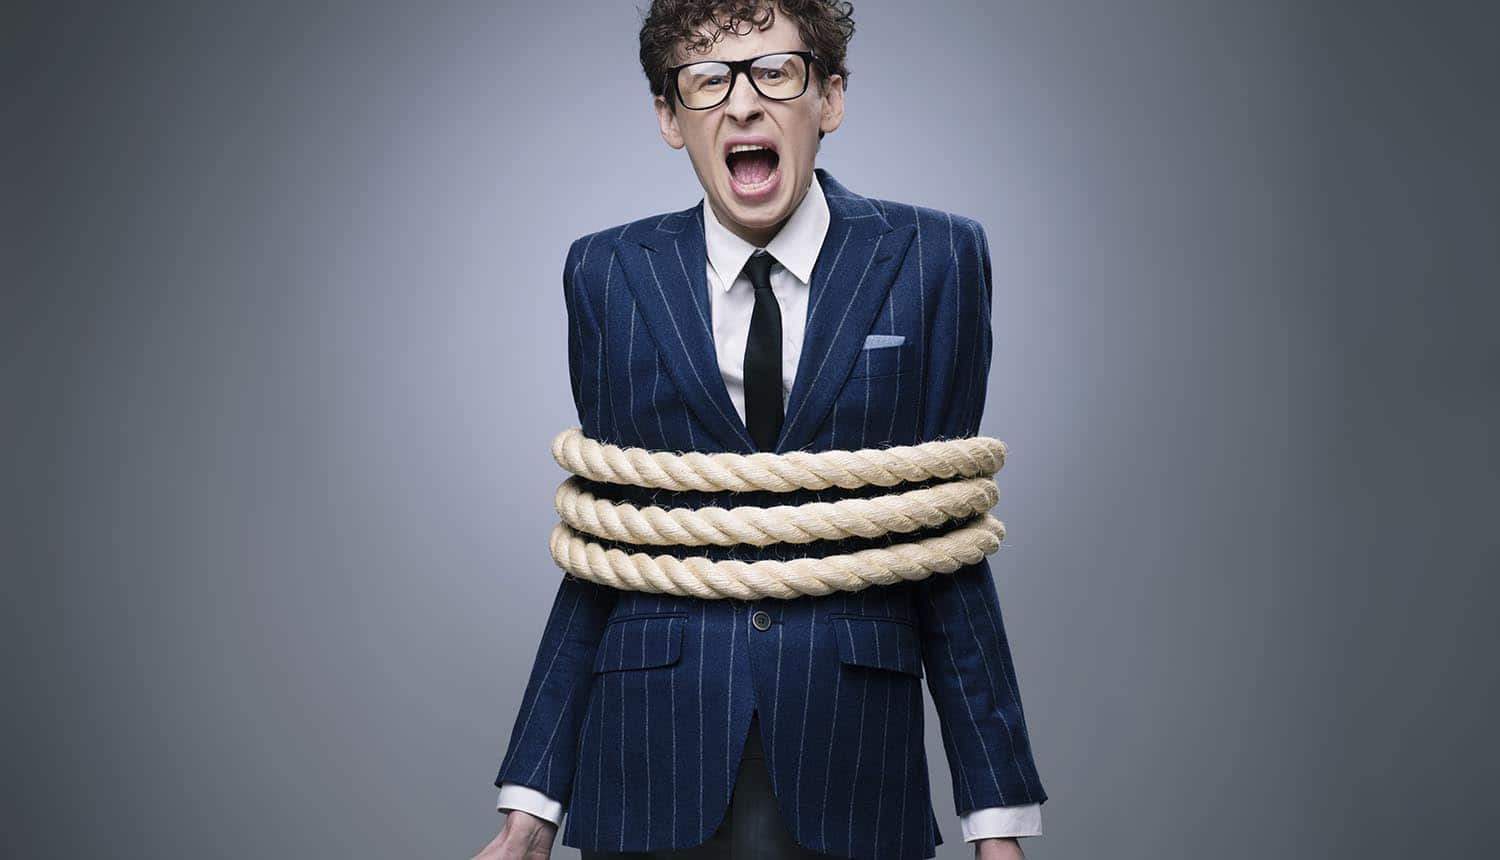 Business man tied up with rope screaming for help showing threat of ransomware attacks